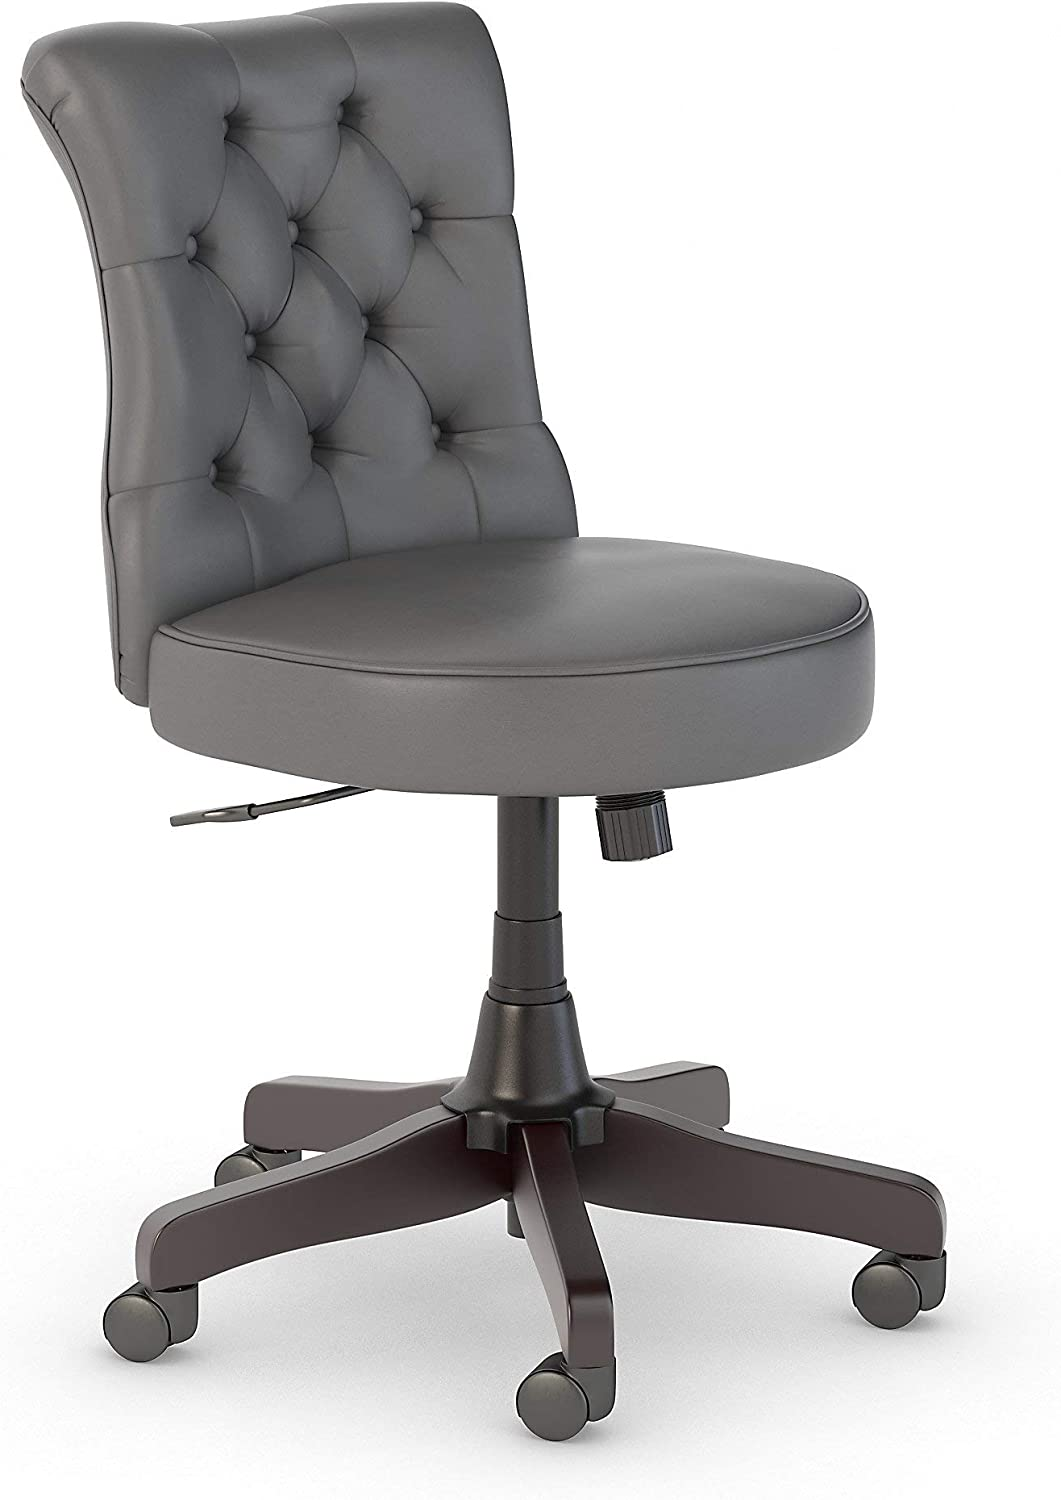 Bush Business Furniture Arden Lane Mid Back Tufted Office Chair, Dark Gray Leather